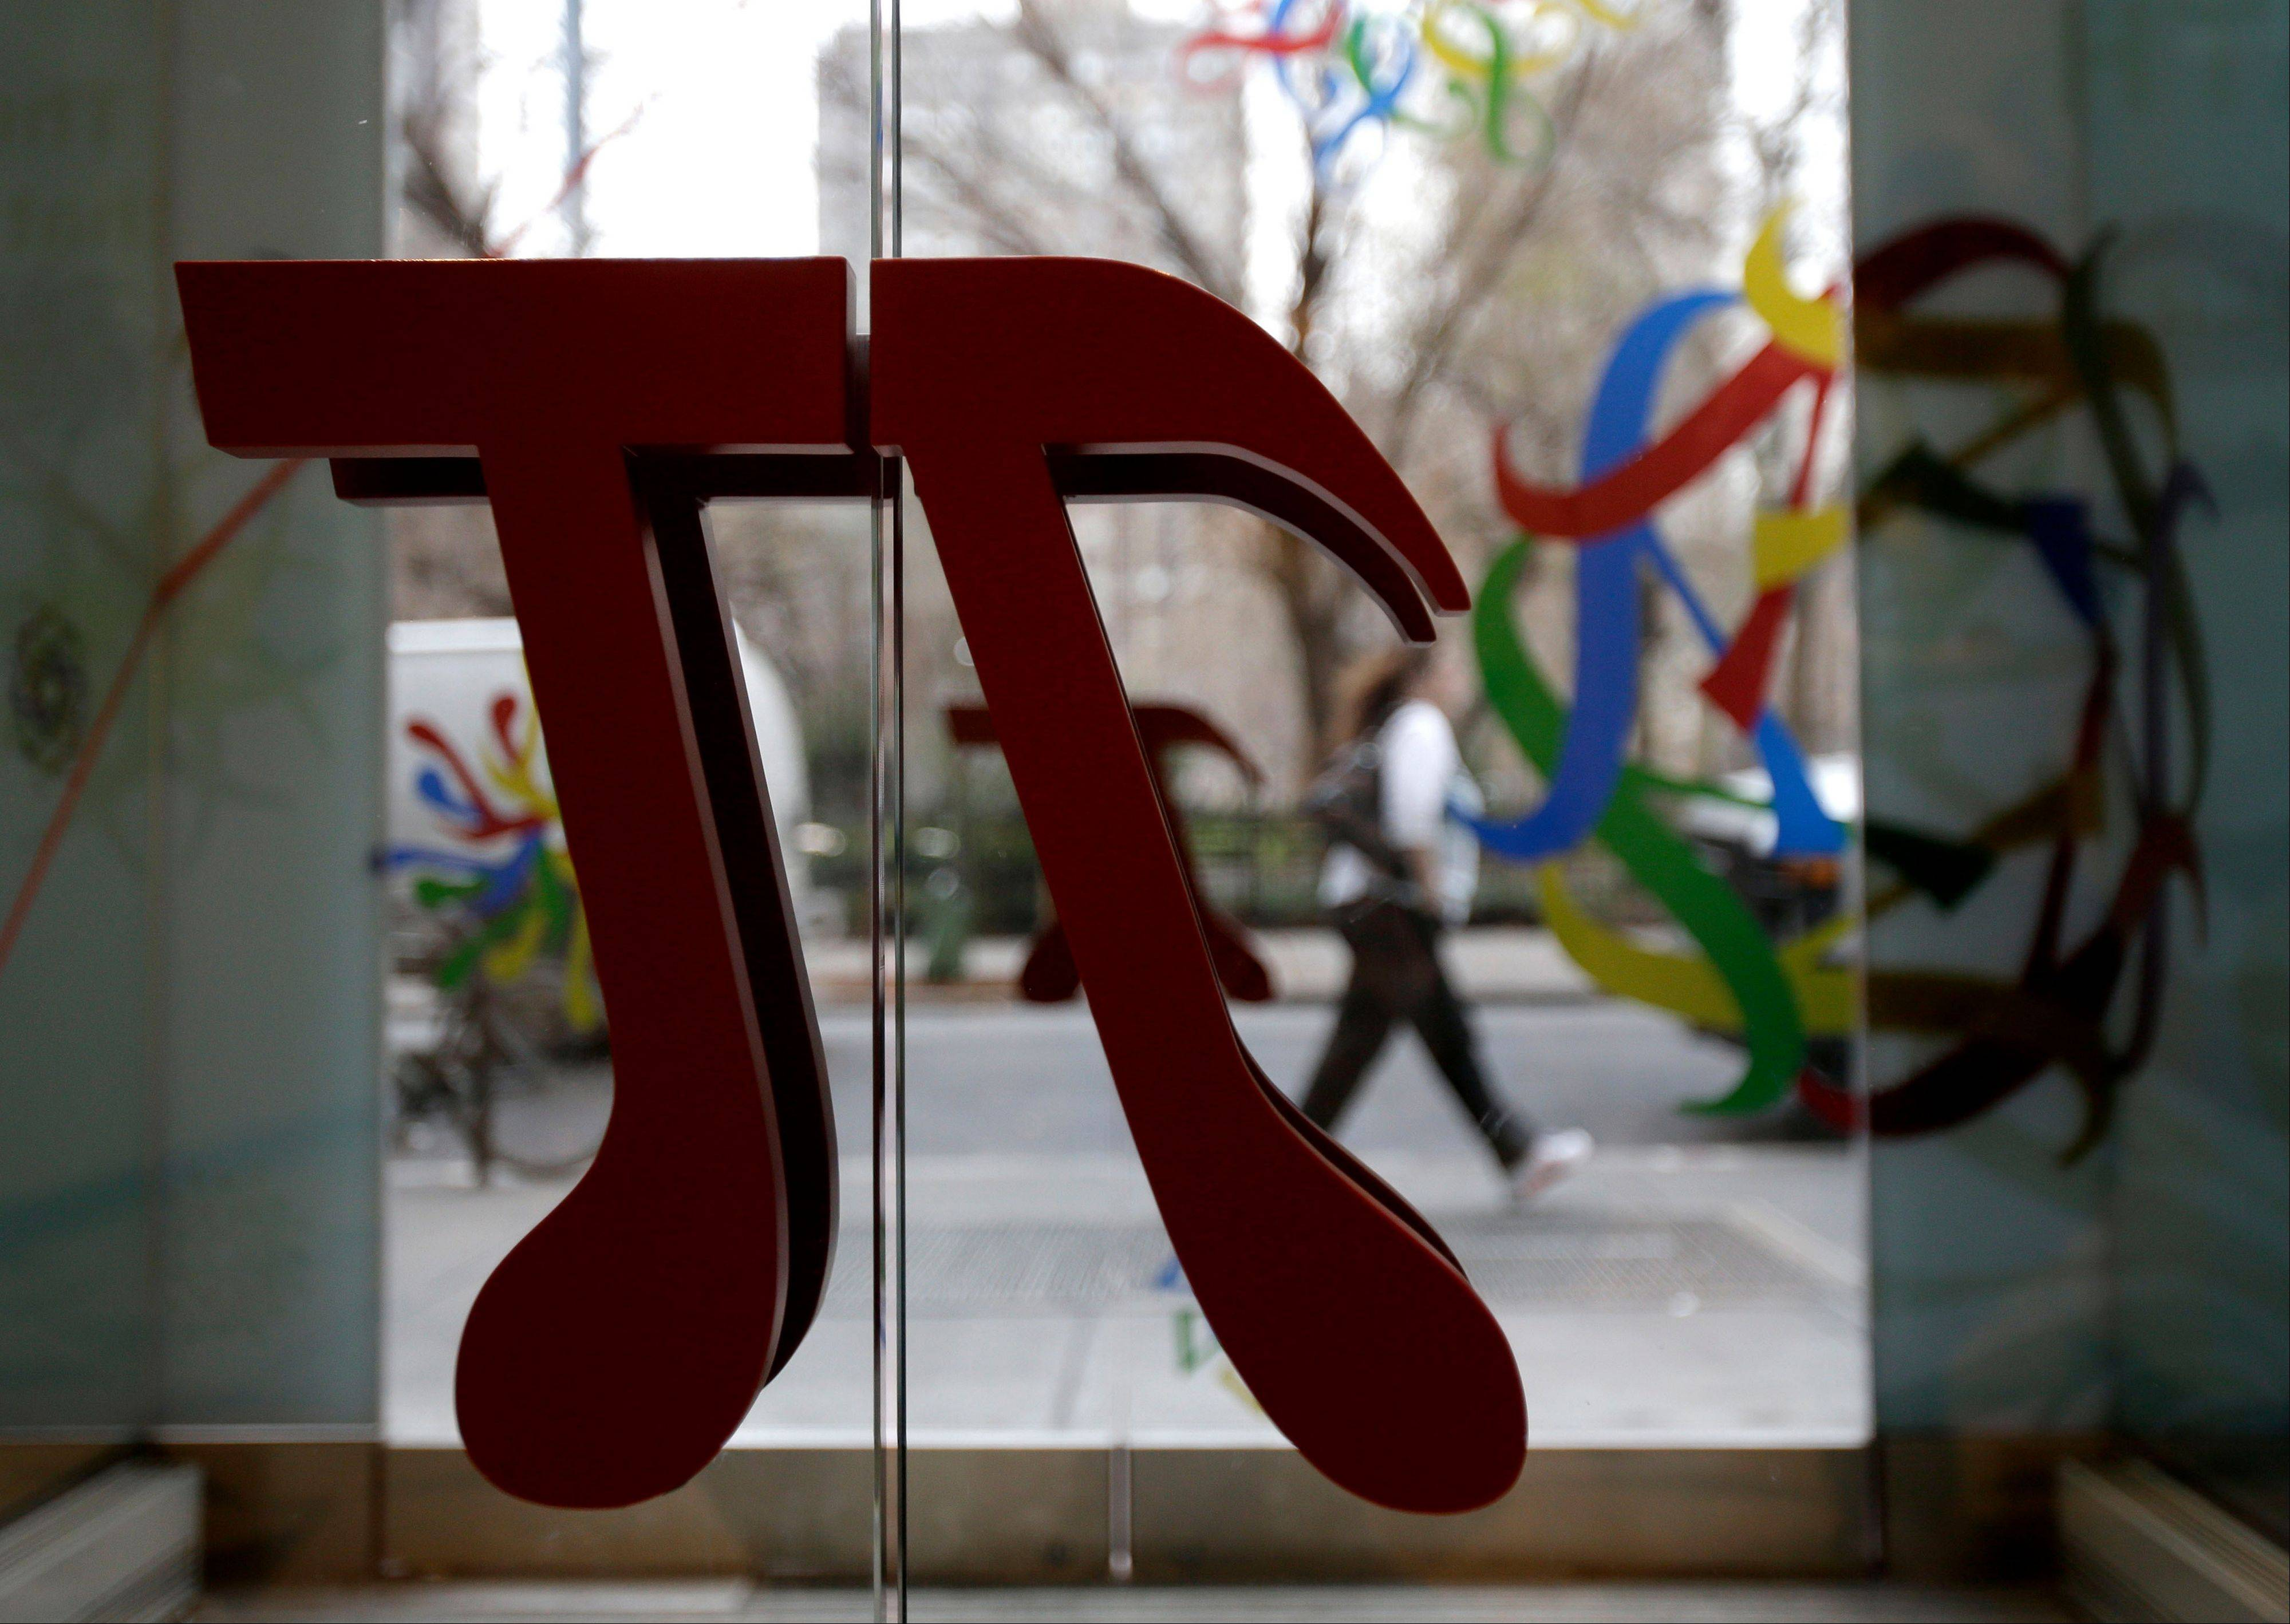 A door handle in the shape of pi greets visitors to the new National Museum of Mathematics in New York. The museum is aimed at kids aged 8 to 13, and curators have given the place a playground feel.